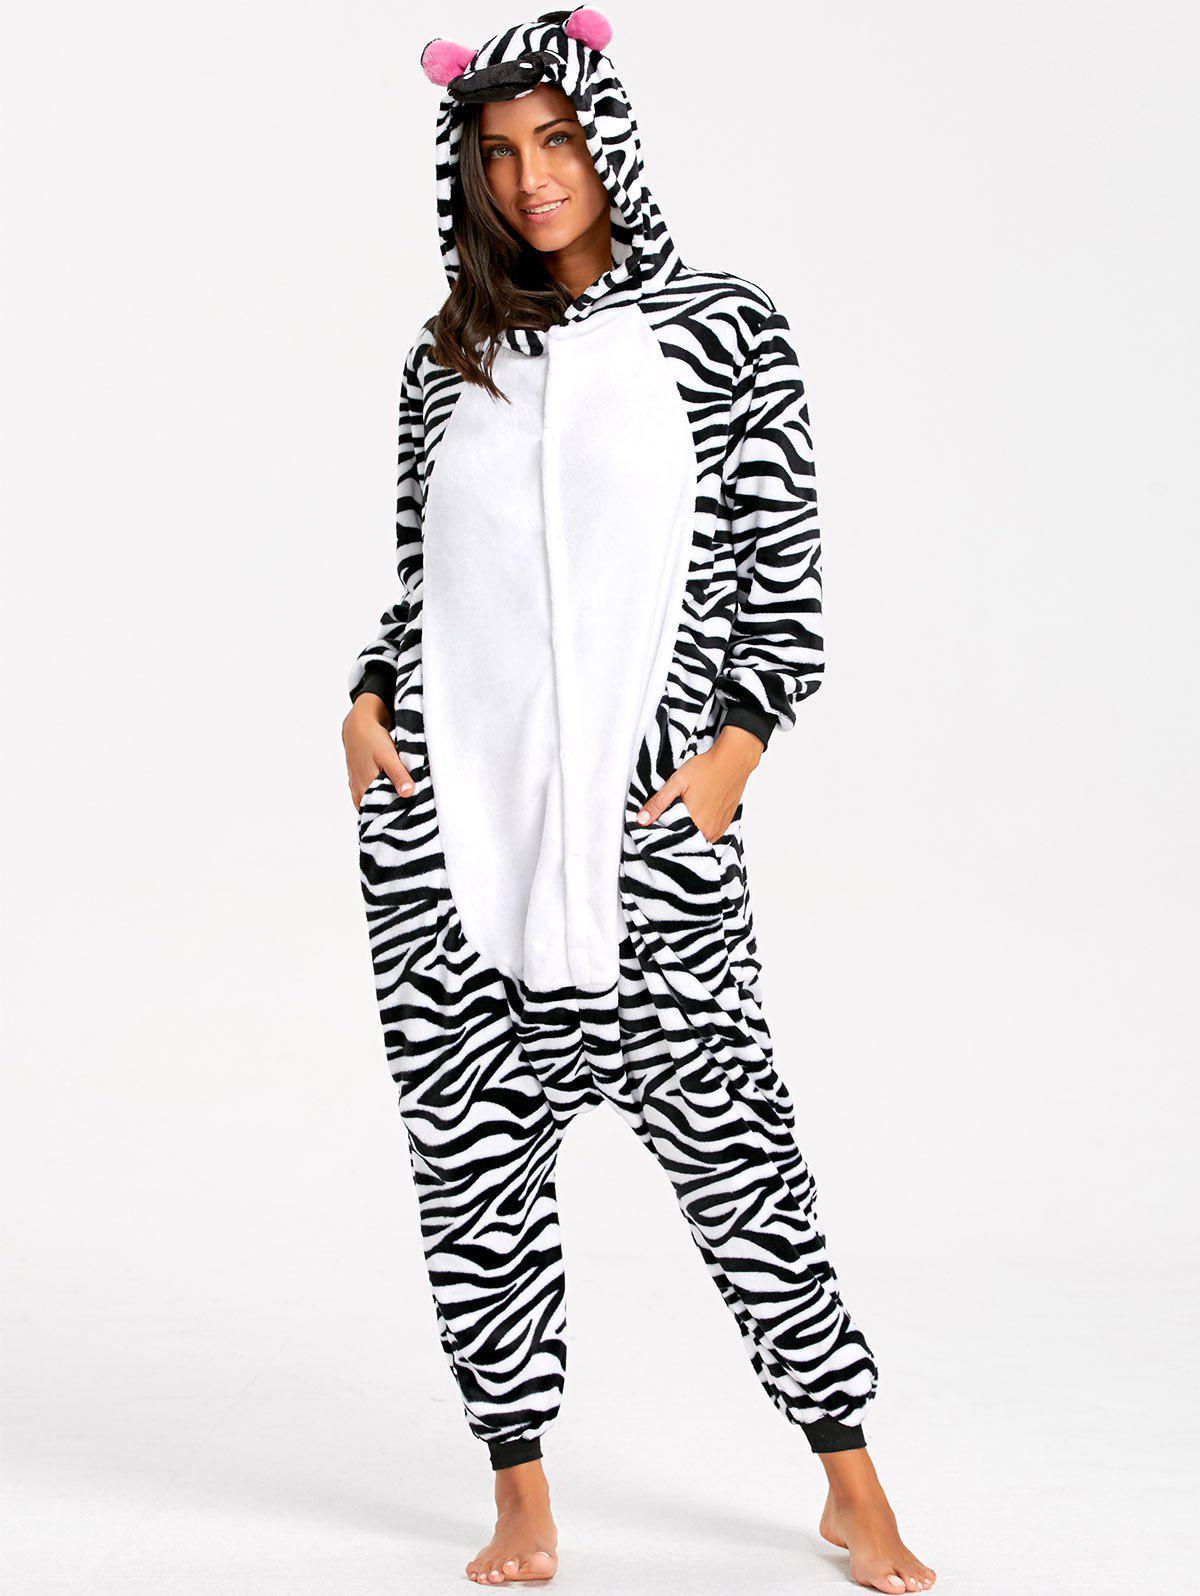 Adult Stripe Zebra Animal Onesie PajamaWOMEN<br><br>Size: L; Color: BLACK WHITE; Material: Polyester; Fabric Type: Fleece; Pattern Type: Animal; Weight: 0.5100kg; Package Contents: 1 x Pajama;